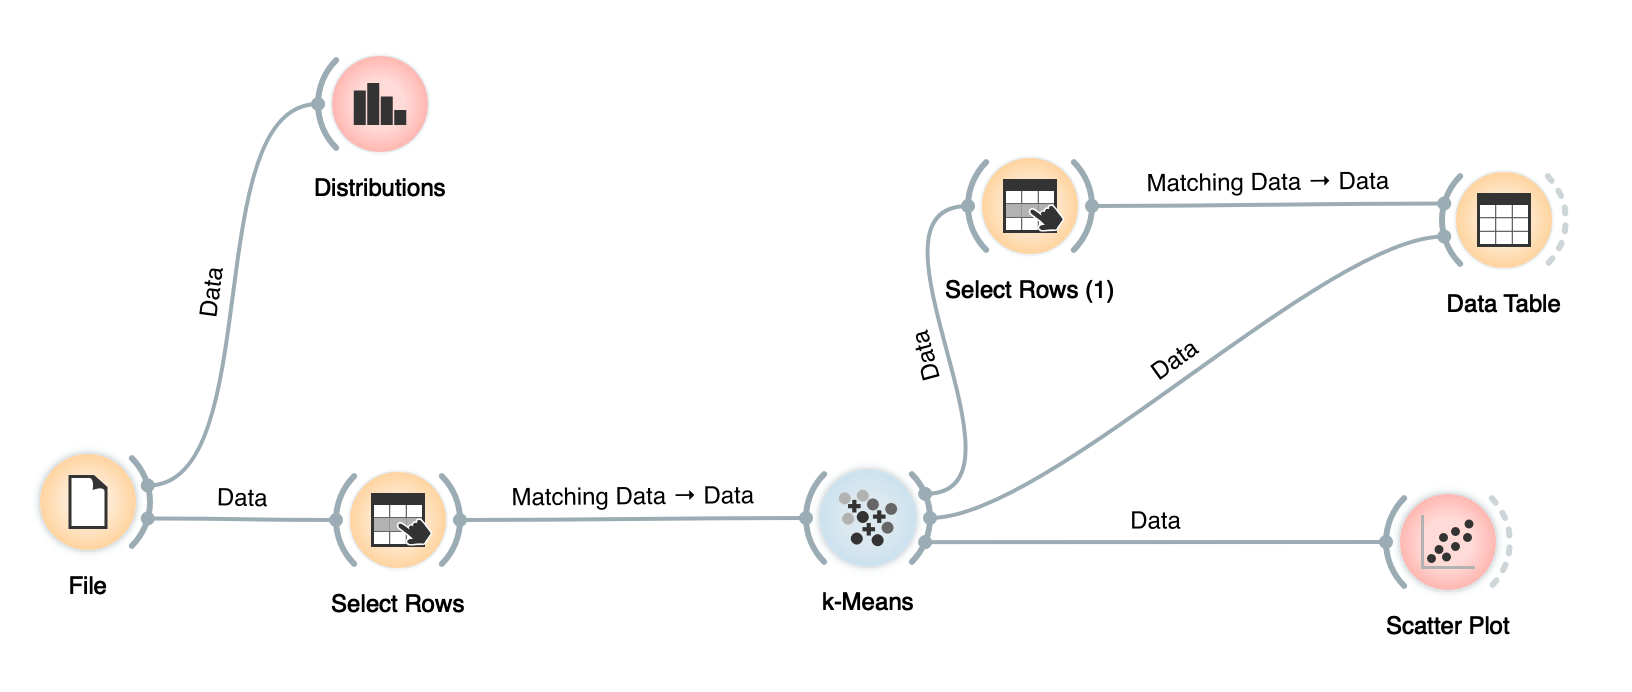 The data analysis pipeline in Orange